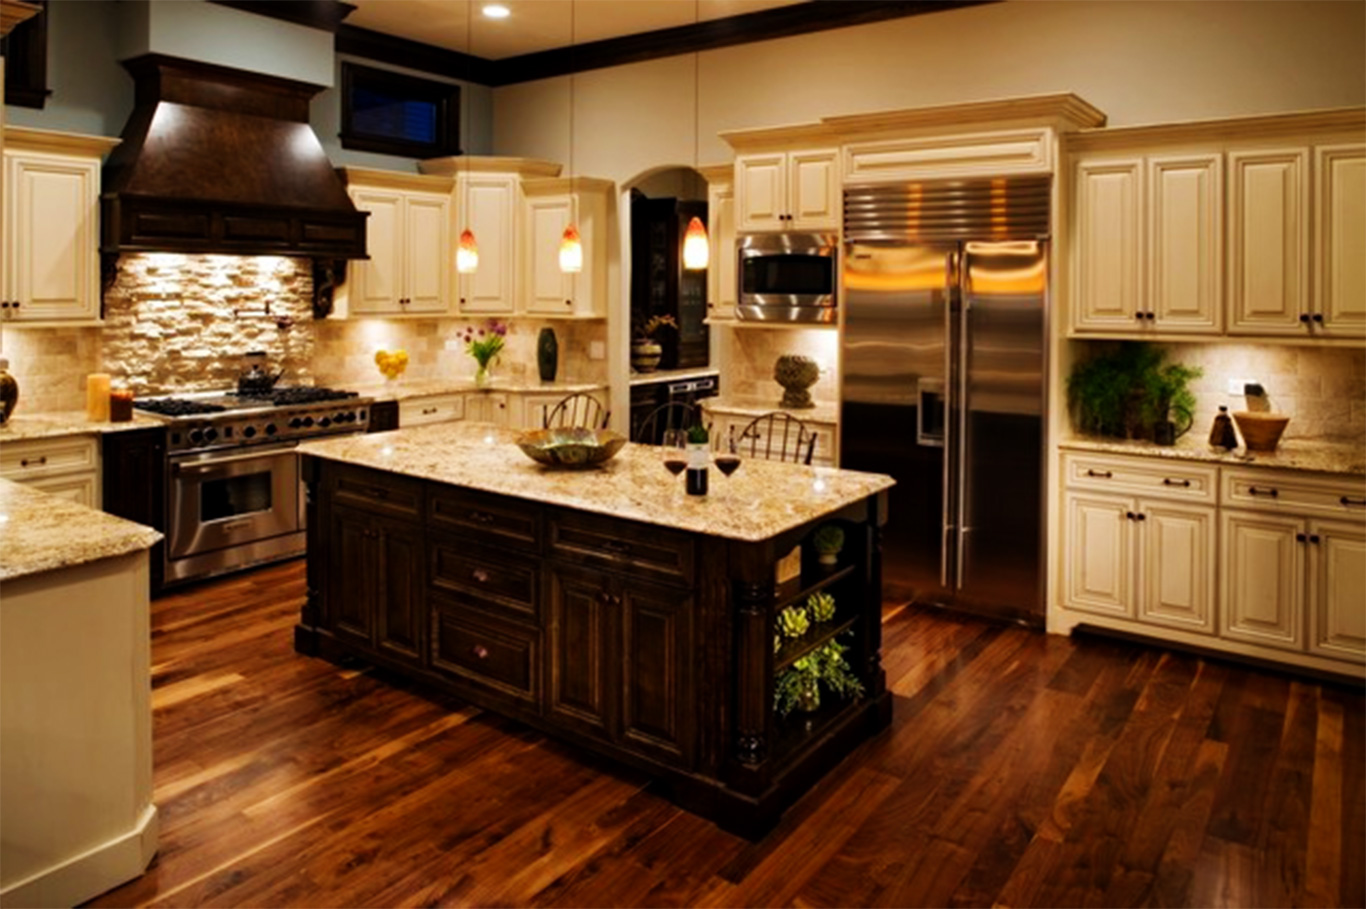 Kitchen Design Ideas Traditional 11 Awesome Type Of Kitchen Design Ideas Awesome 11